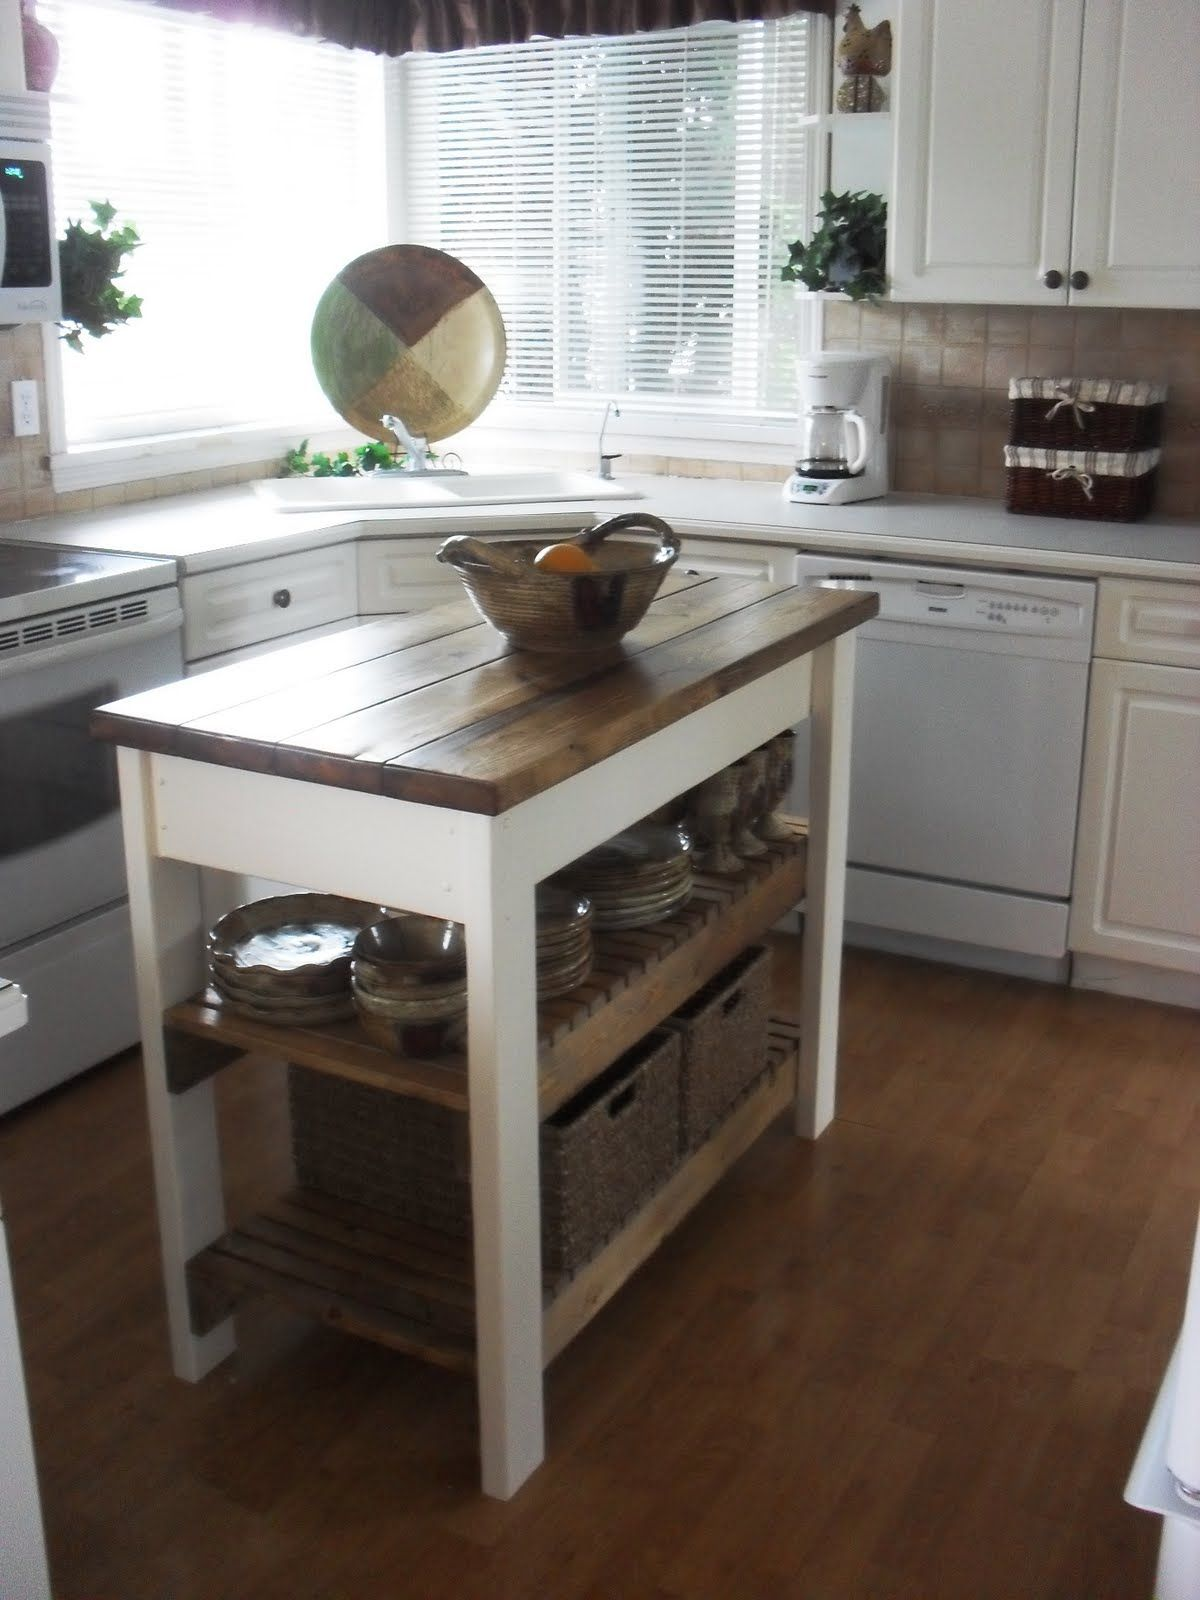 Add Your Kitchen With Kitchen Island With Stools: Home Frosting: Kitchen Island- Total To Build Is $47